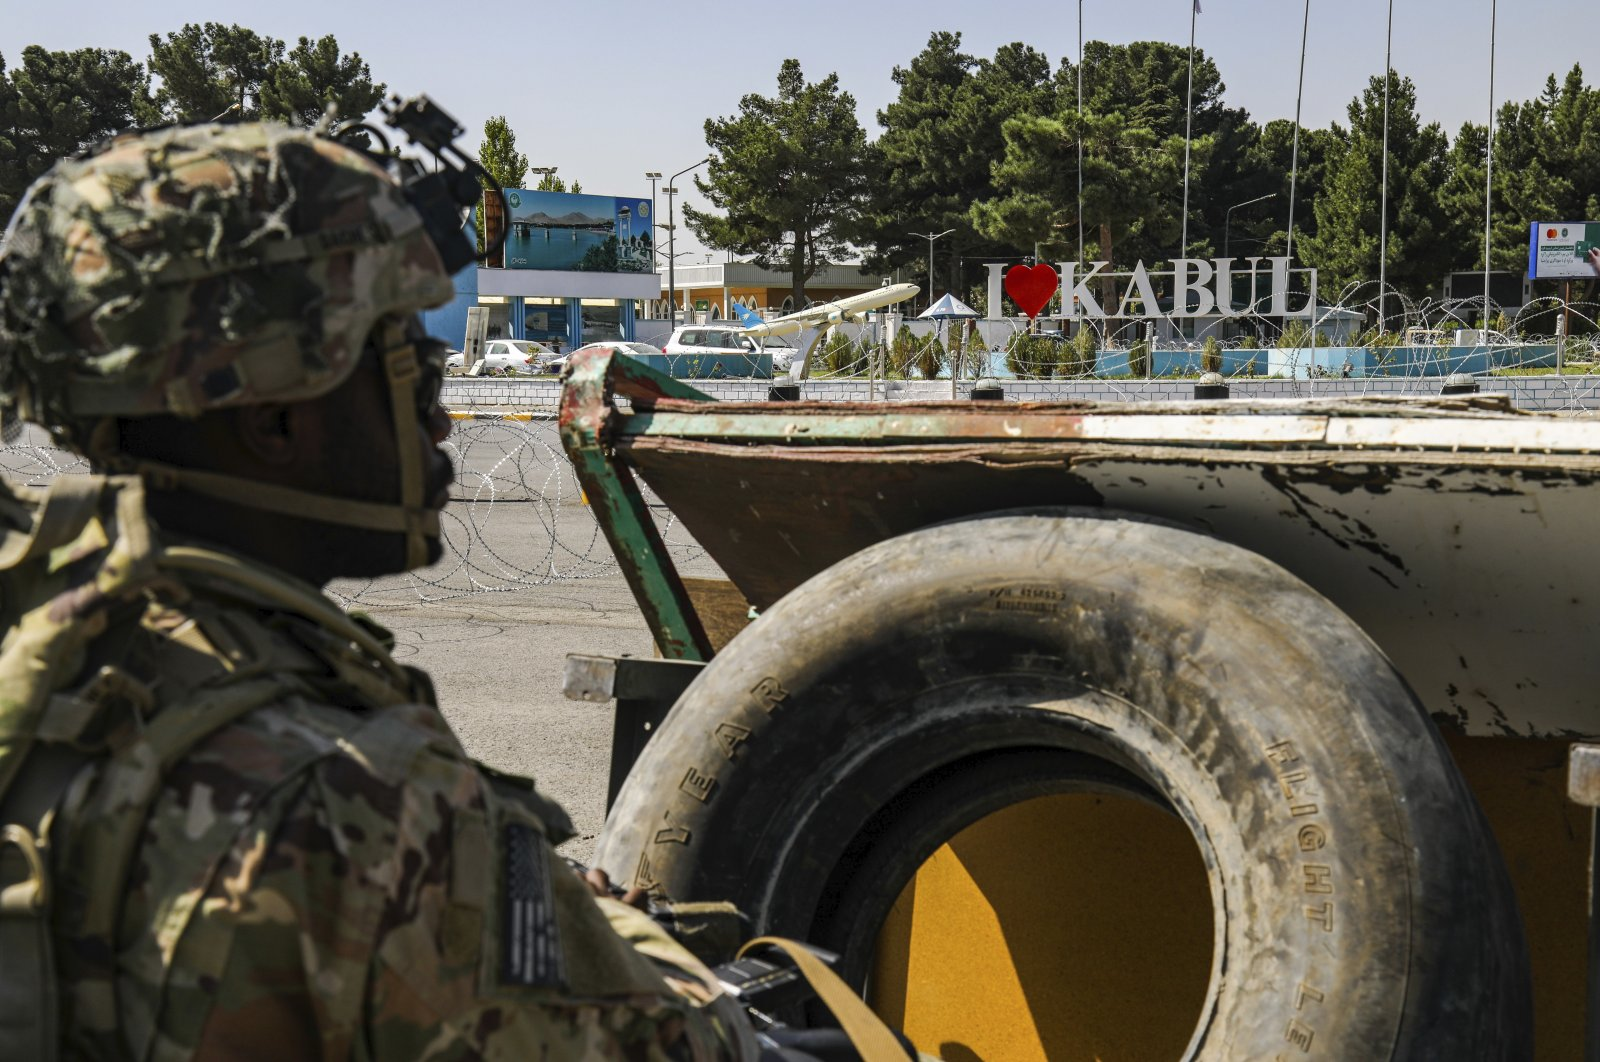 In this image provided by the U.S. Army, a paratrooper assigned to the 1st Brigade Combat Team, 82nd Airborne Division monitors security during evacuations at Kabul Hamid Karzai International Airport, Afghanistan, Aug 25, 2021. (Sgt. Jillian G. Hix/U.S. Army via AP)